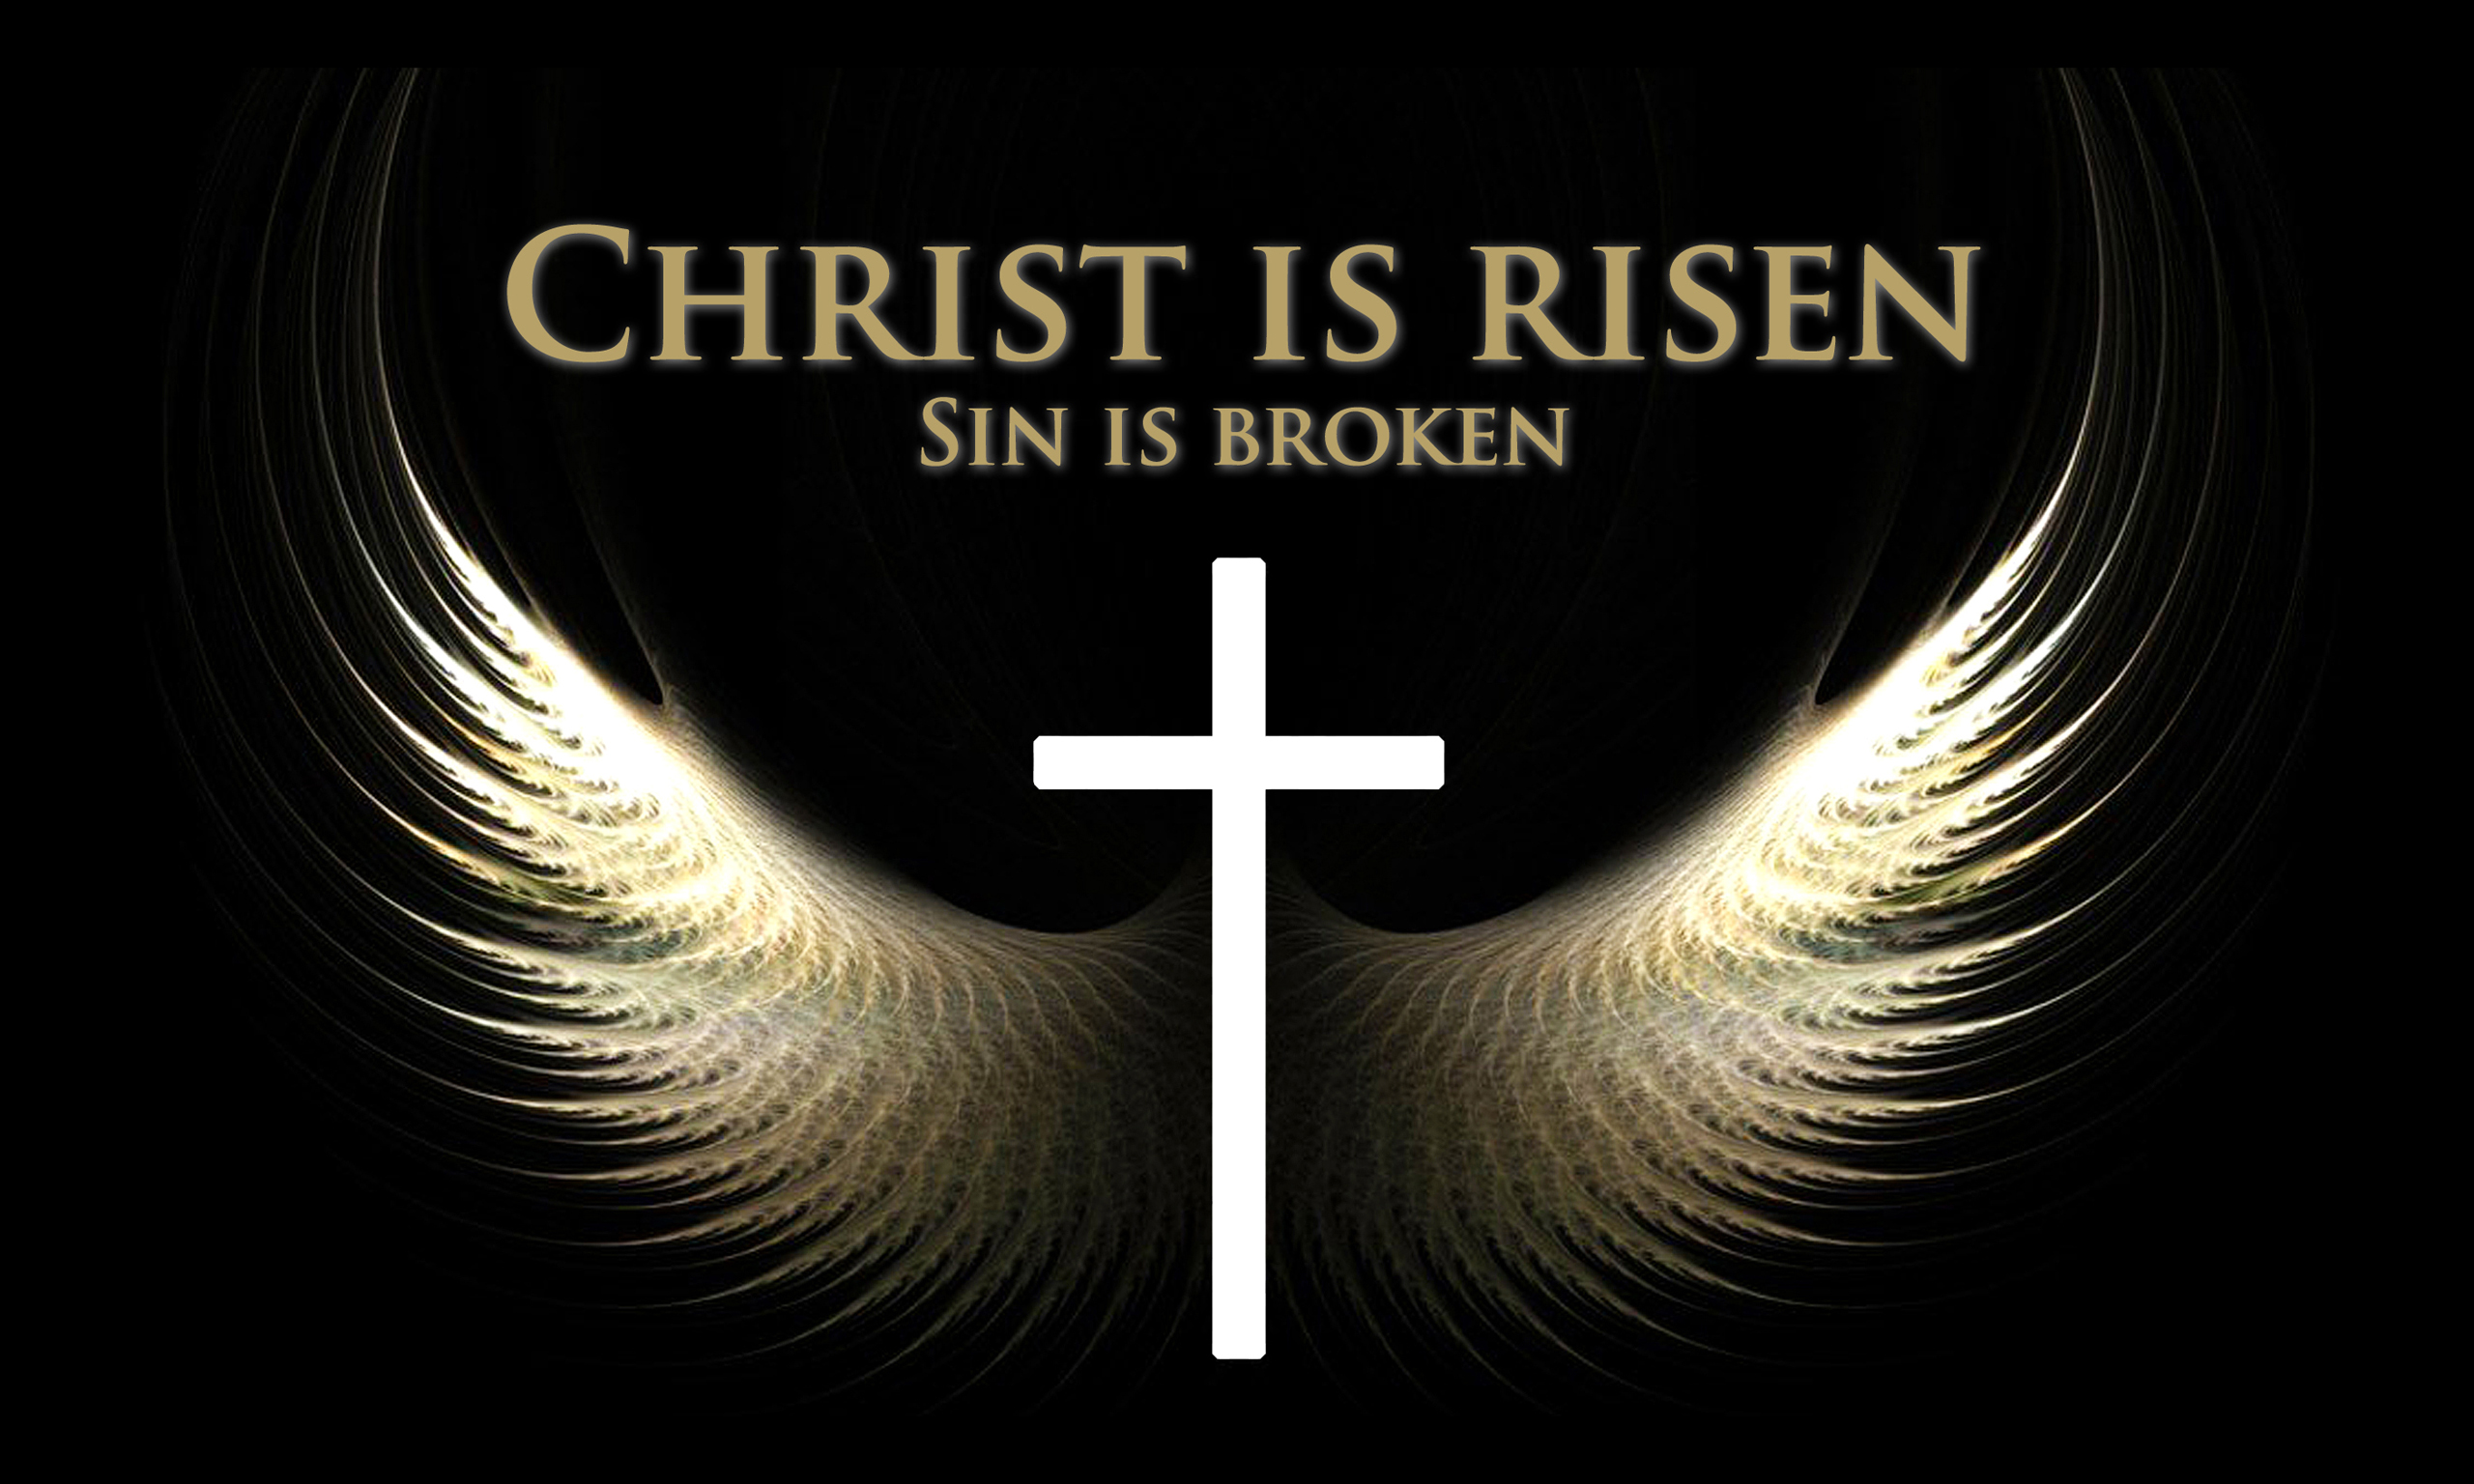 christ is risen Wallpaper   Christian Wallpapers and Backgrounds 2560x1536